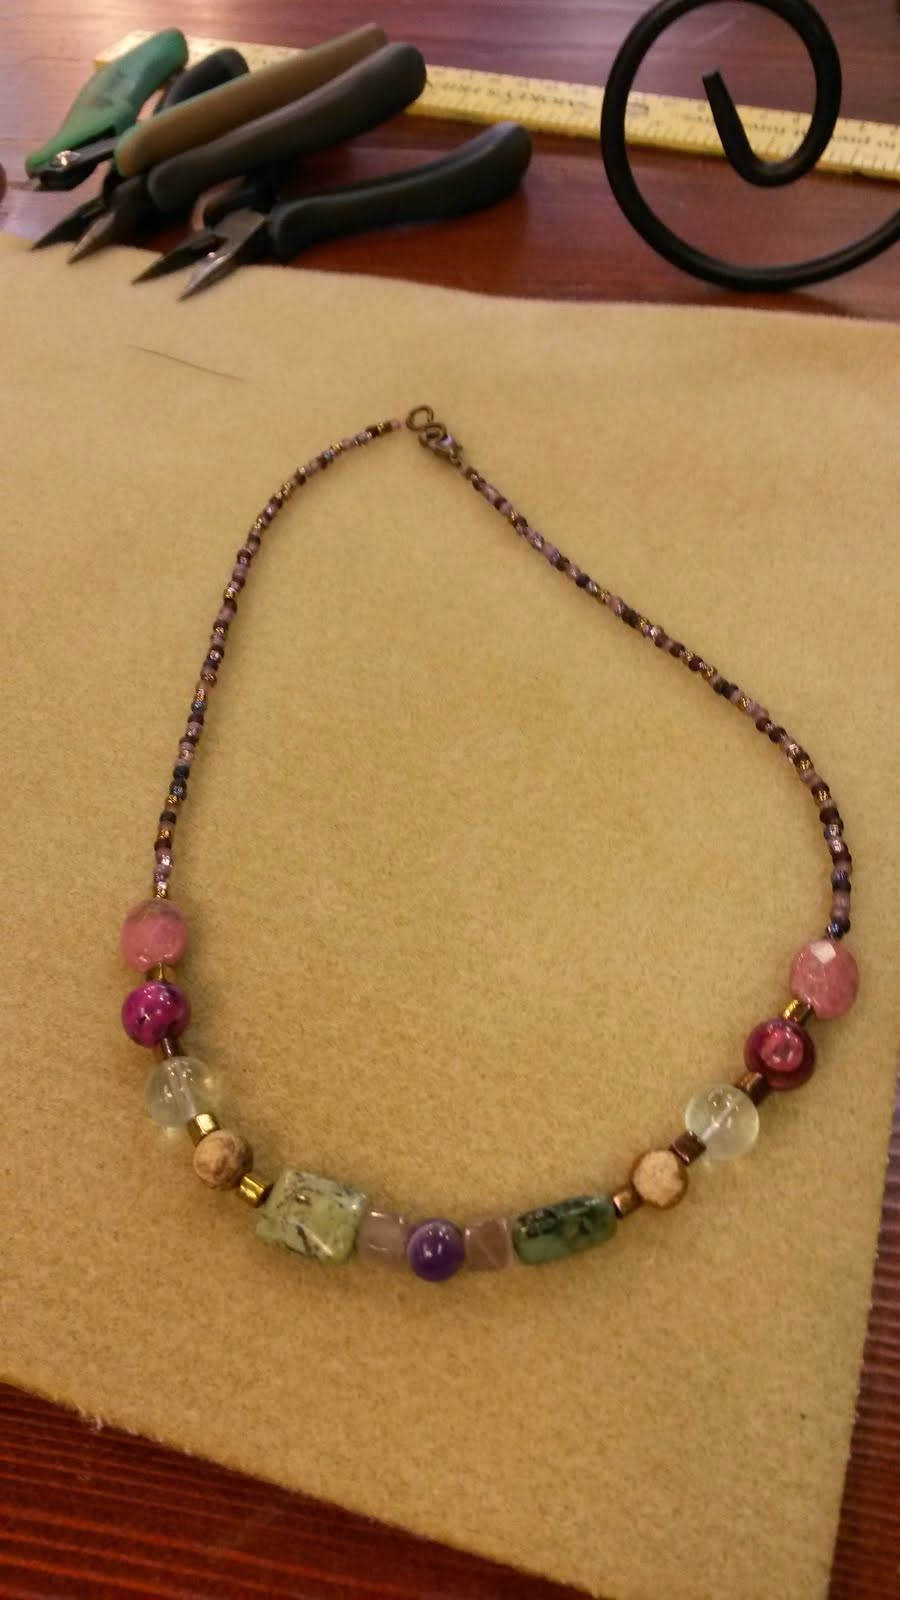 Made My Own Necklace in Galena (2-21-15)